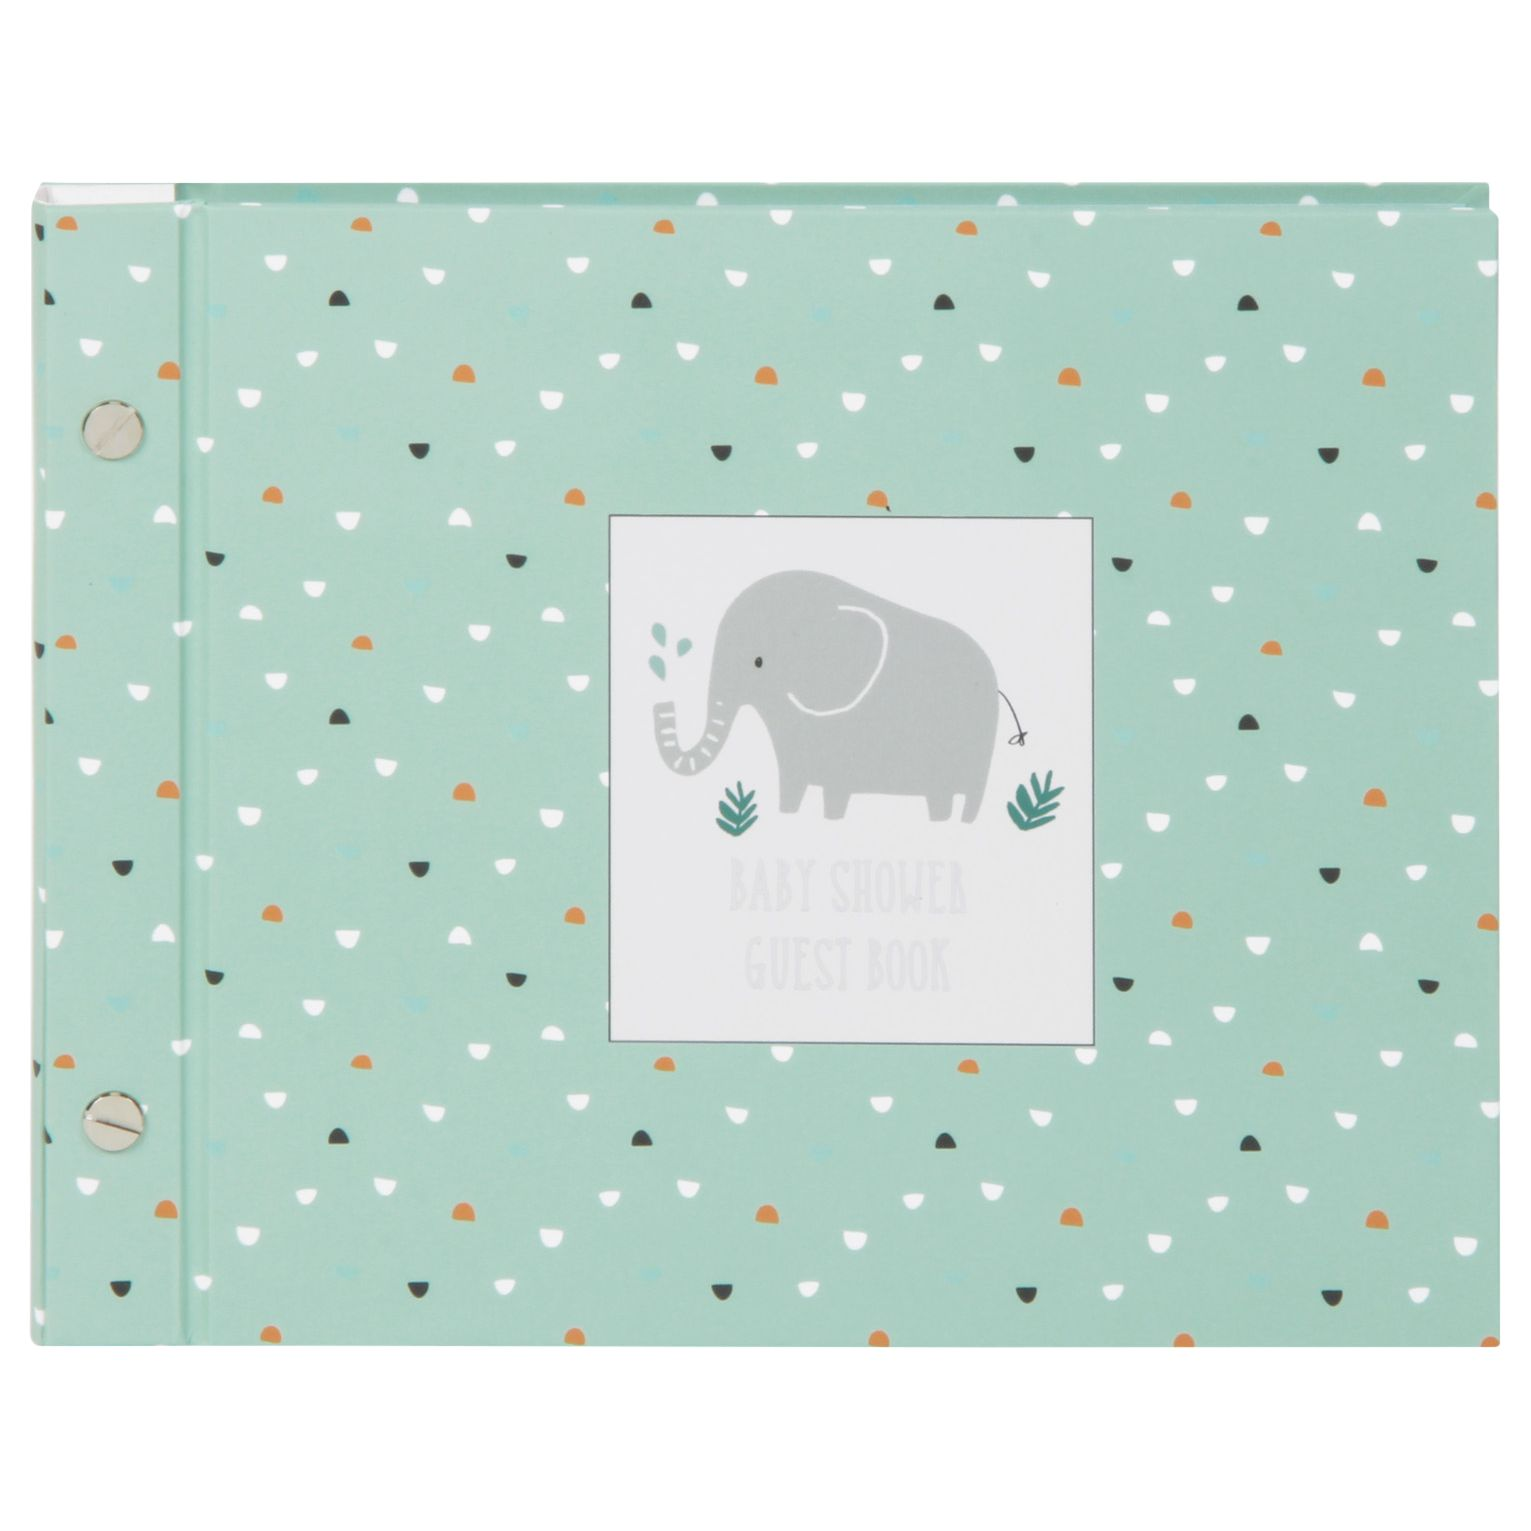 Baby Shower Gifts John Lewis ~ John lewis elephant baby shower guest book octer �